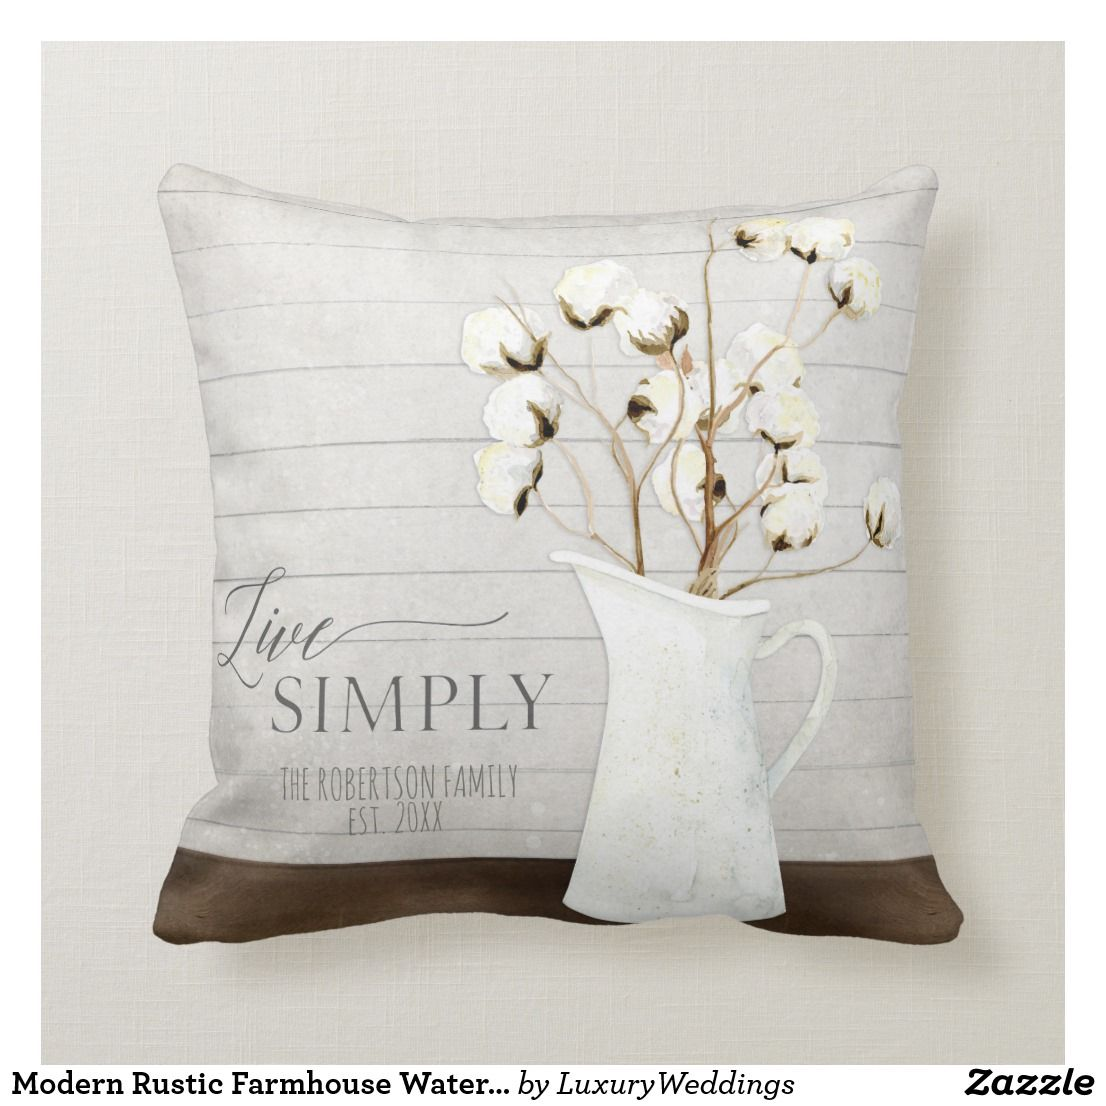 Modern Rustic Farmhouse Watercolor Live Simply Art Throw Pillow Zazzle Com In 2020 Modern Rustic Throw Pillows Rustic Farmhouse